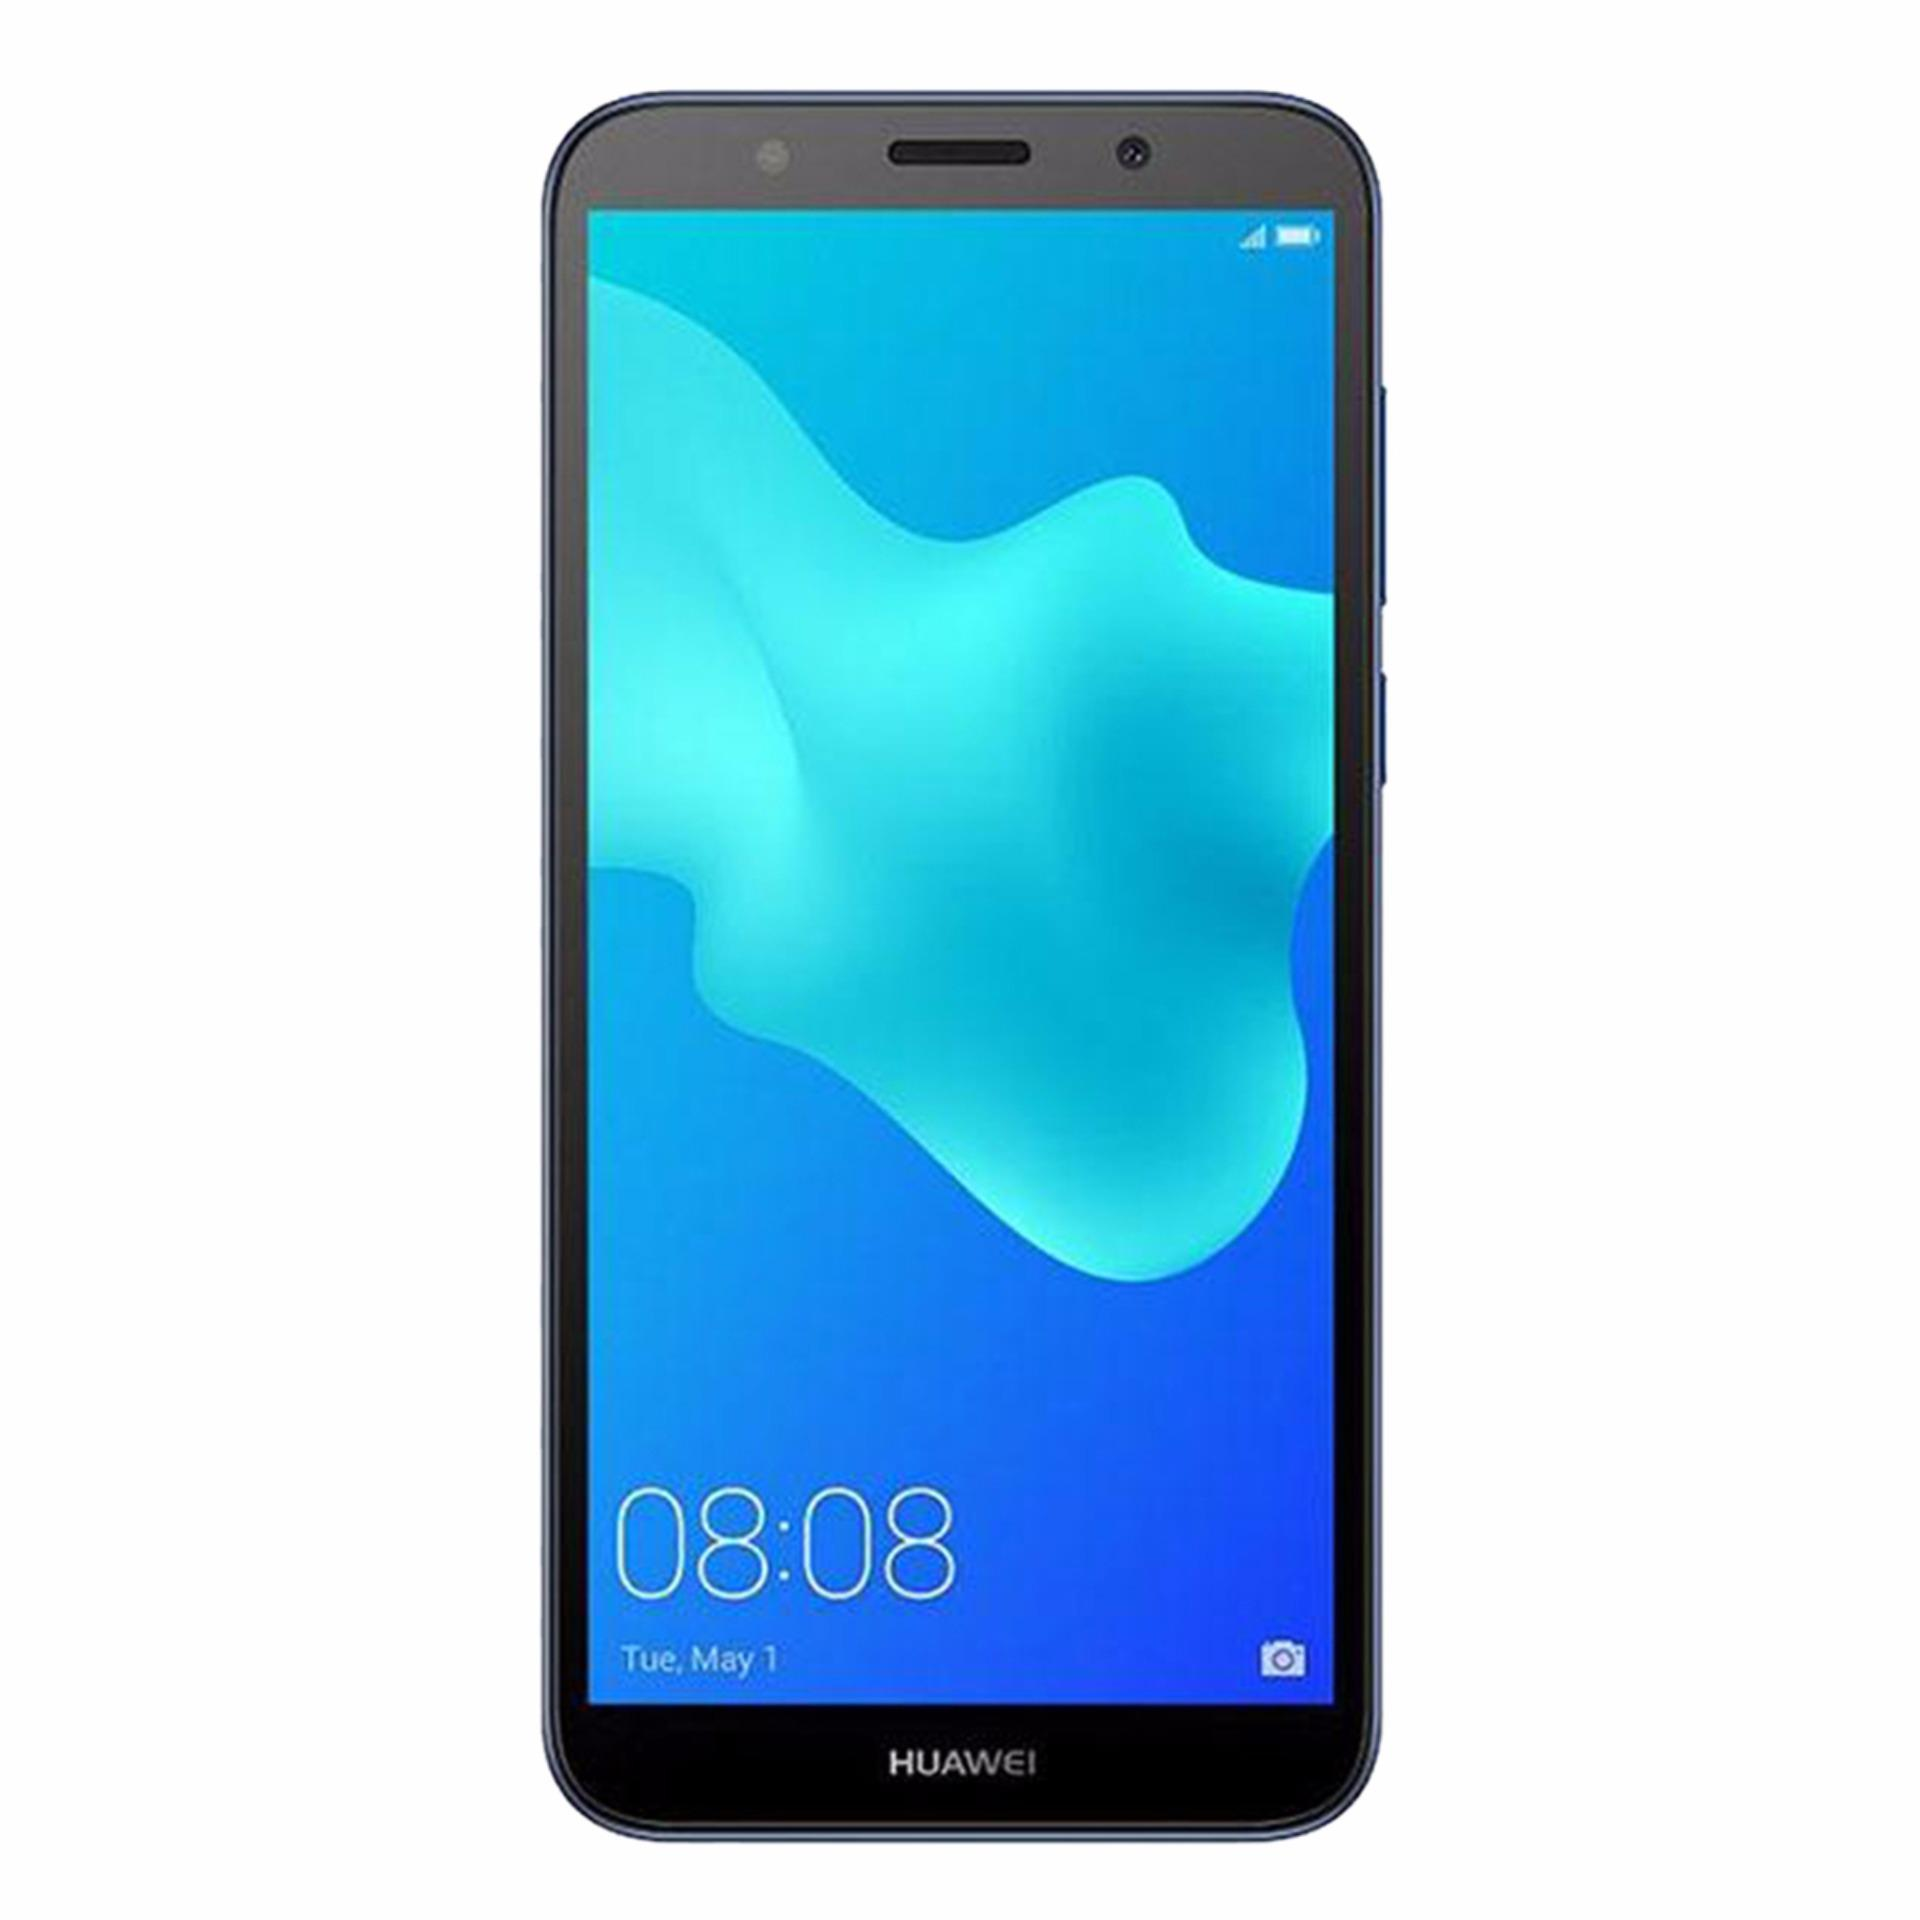 "Huawei Y5 Prime 2018 Smartphone 5.5"" - 2GB RAM - 16GB ROM - 13MP Camera - Blue"